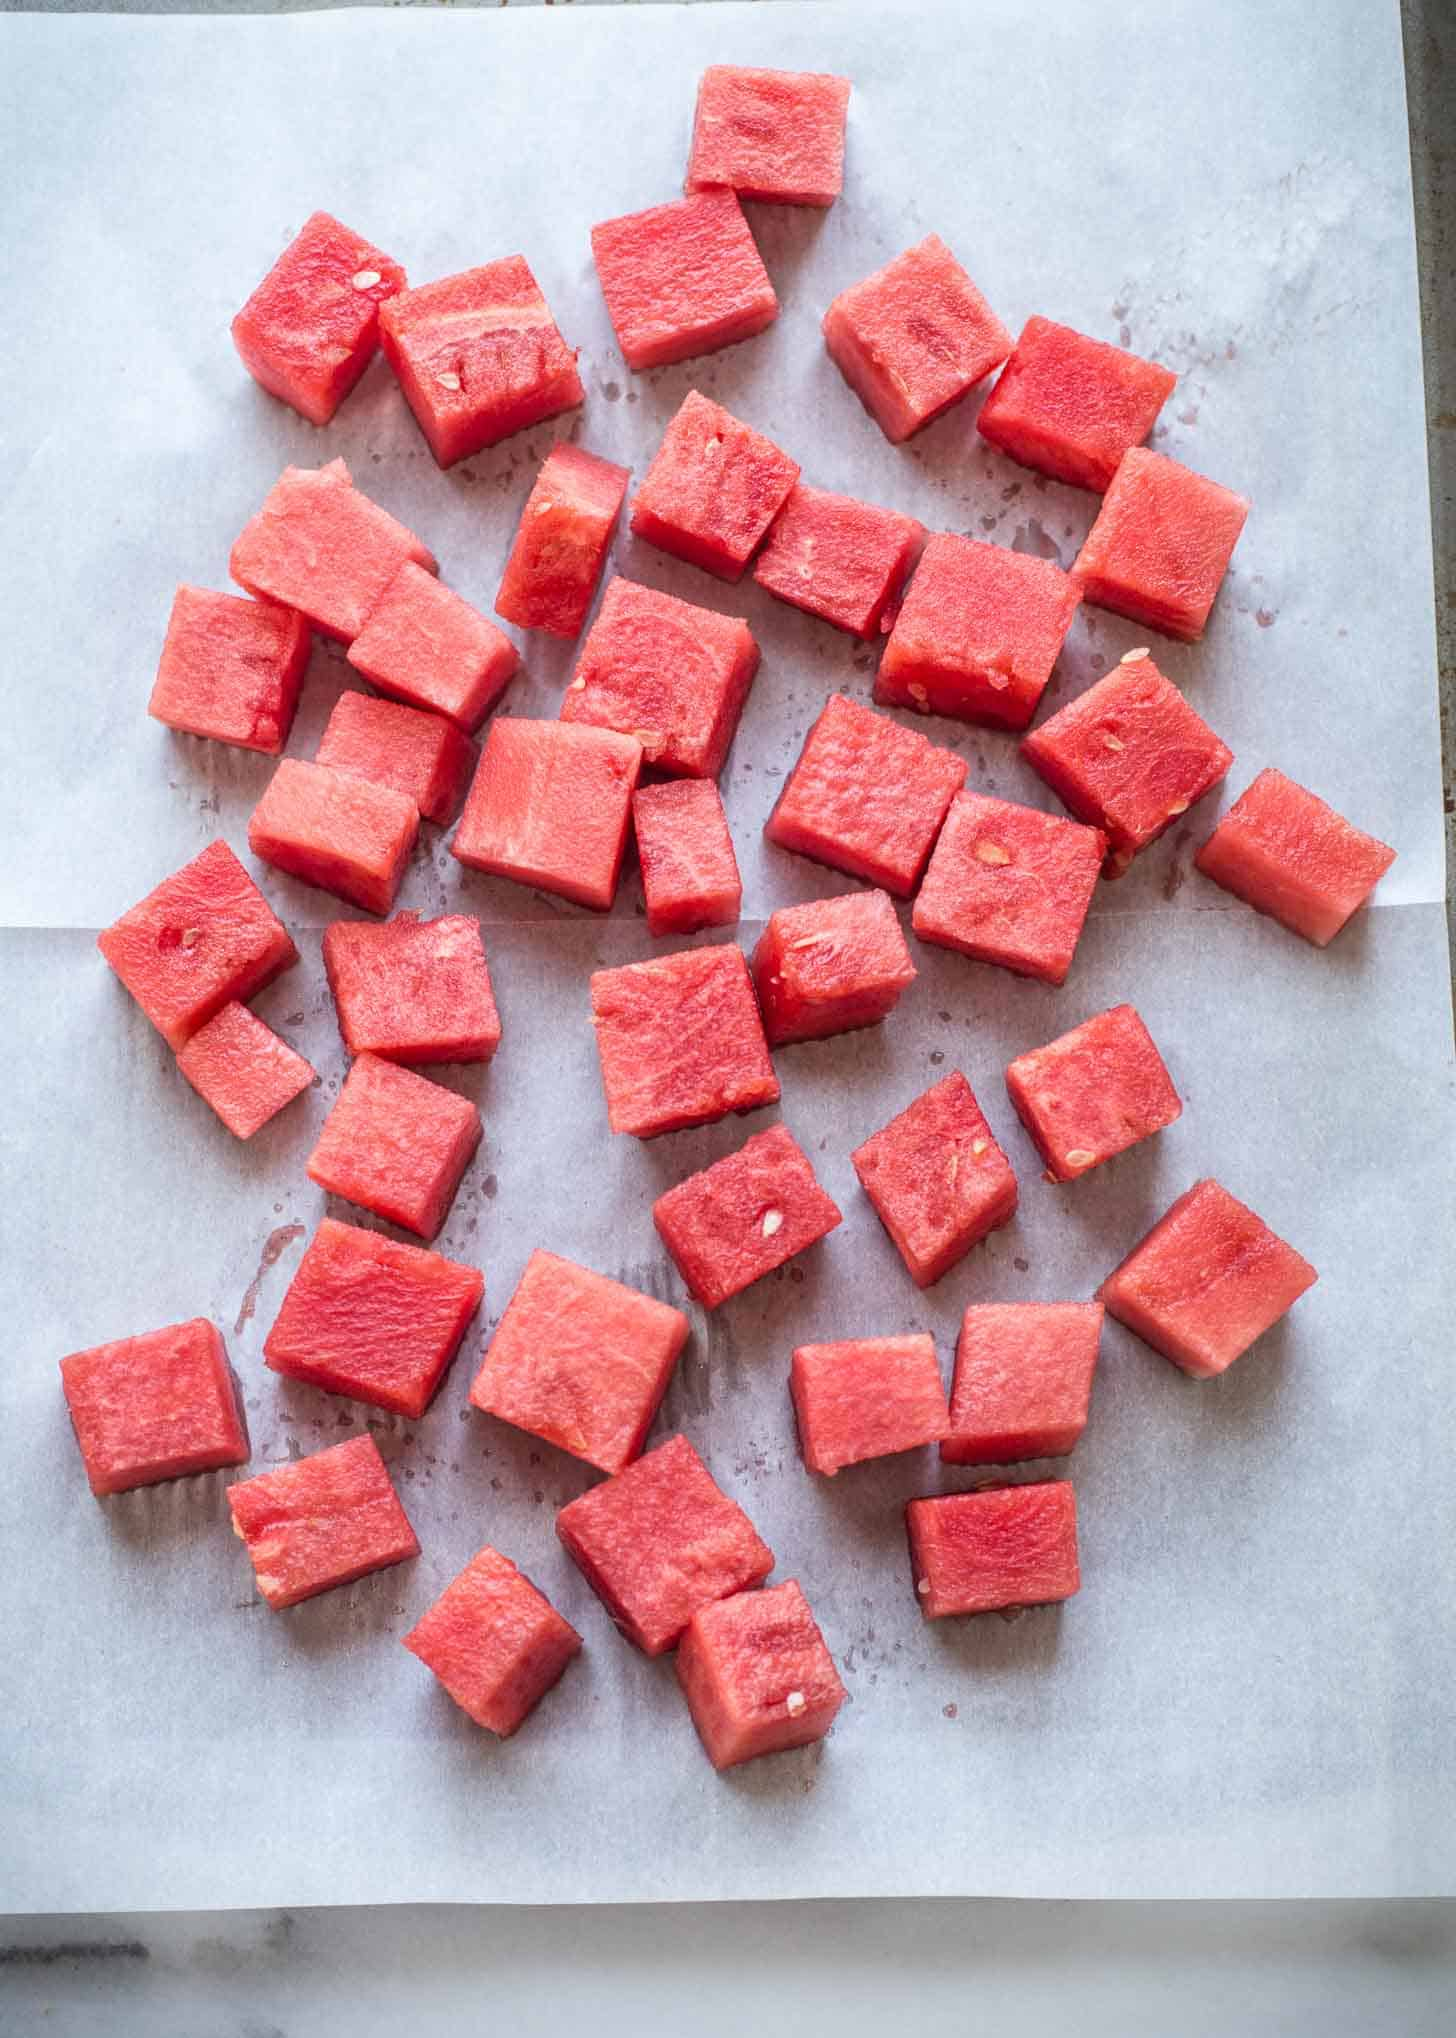 cubes of watermelon